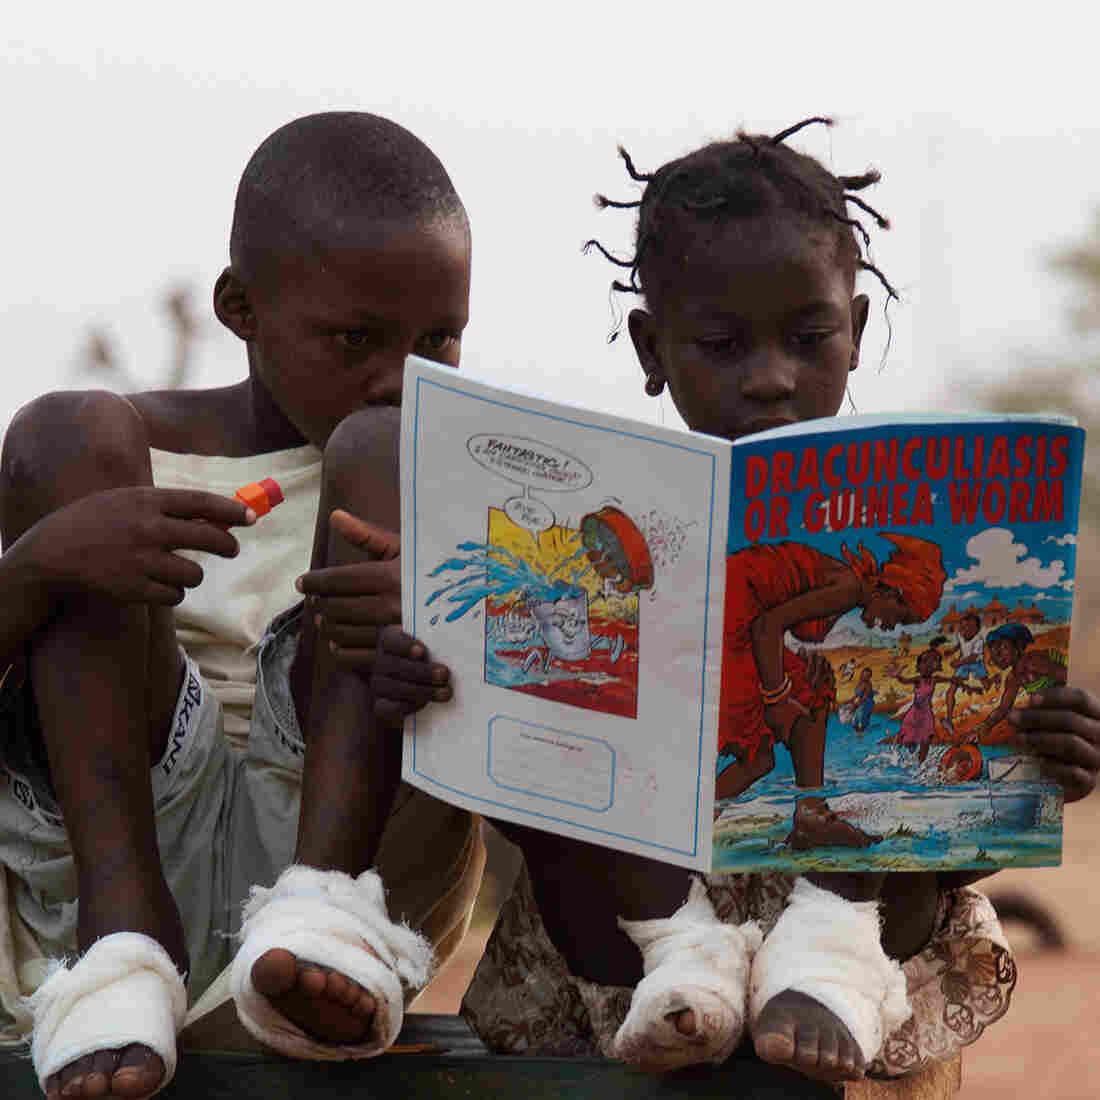 A comic book captures the attention